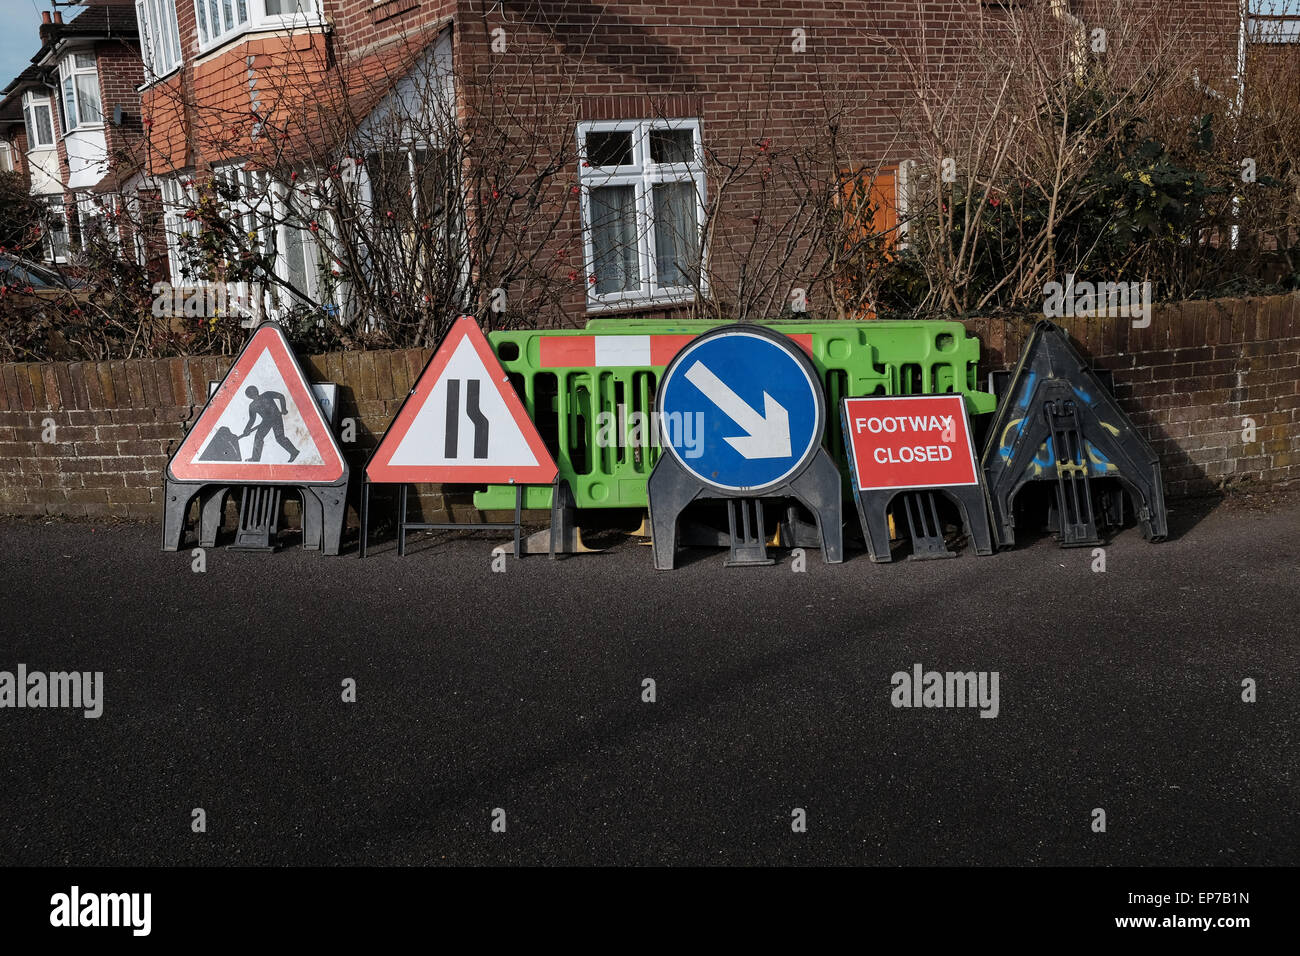 Variety of roadwork signs - Stock Image